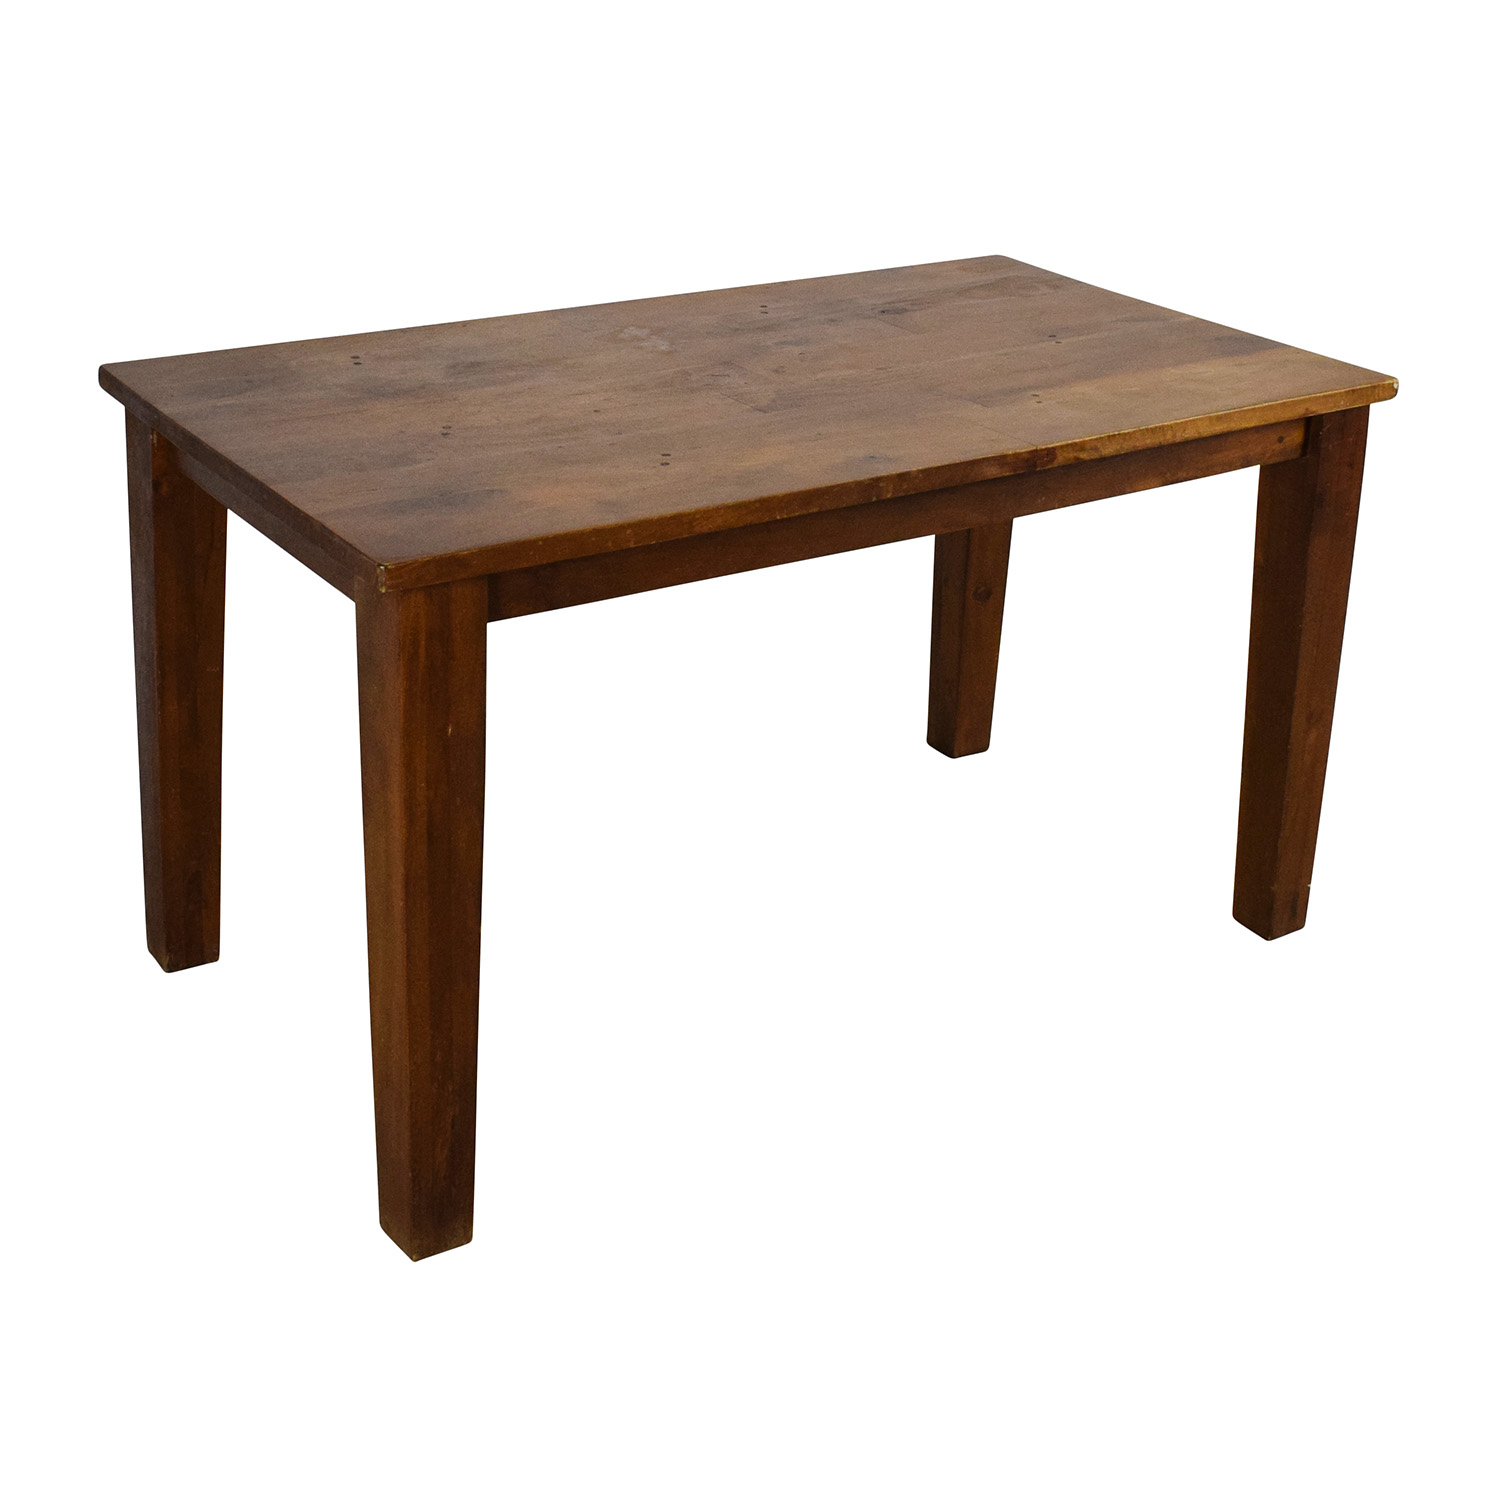 off west elm rosewood dining table tables accent target furniture coffee turquoise bedside lamps rechargeable for home oak drop leaf acrylic with shelf cool sofa side height